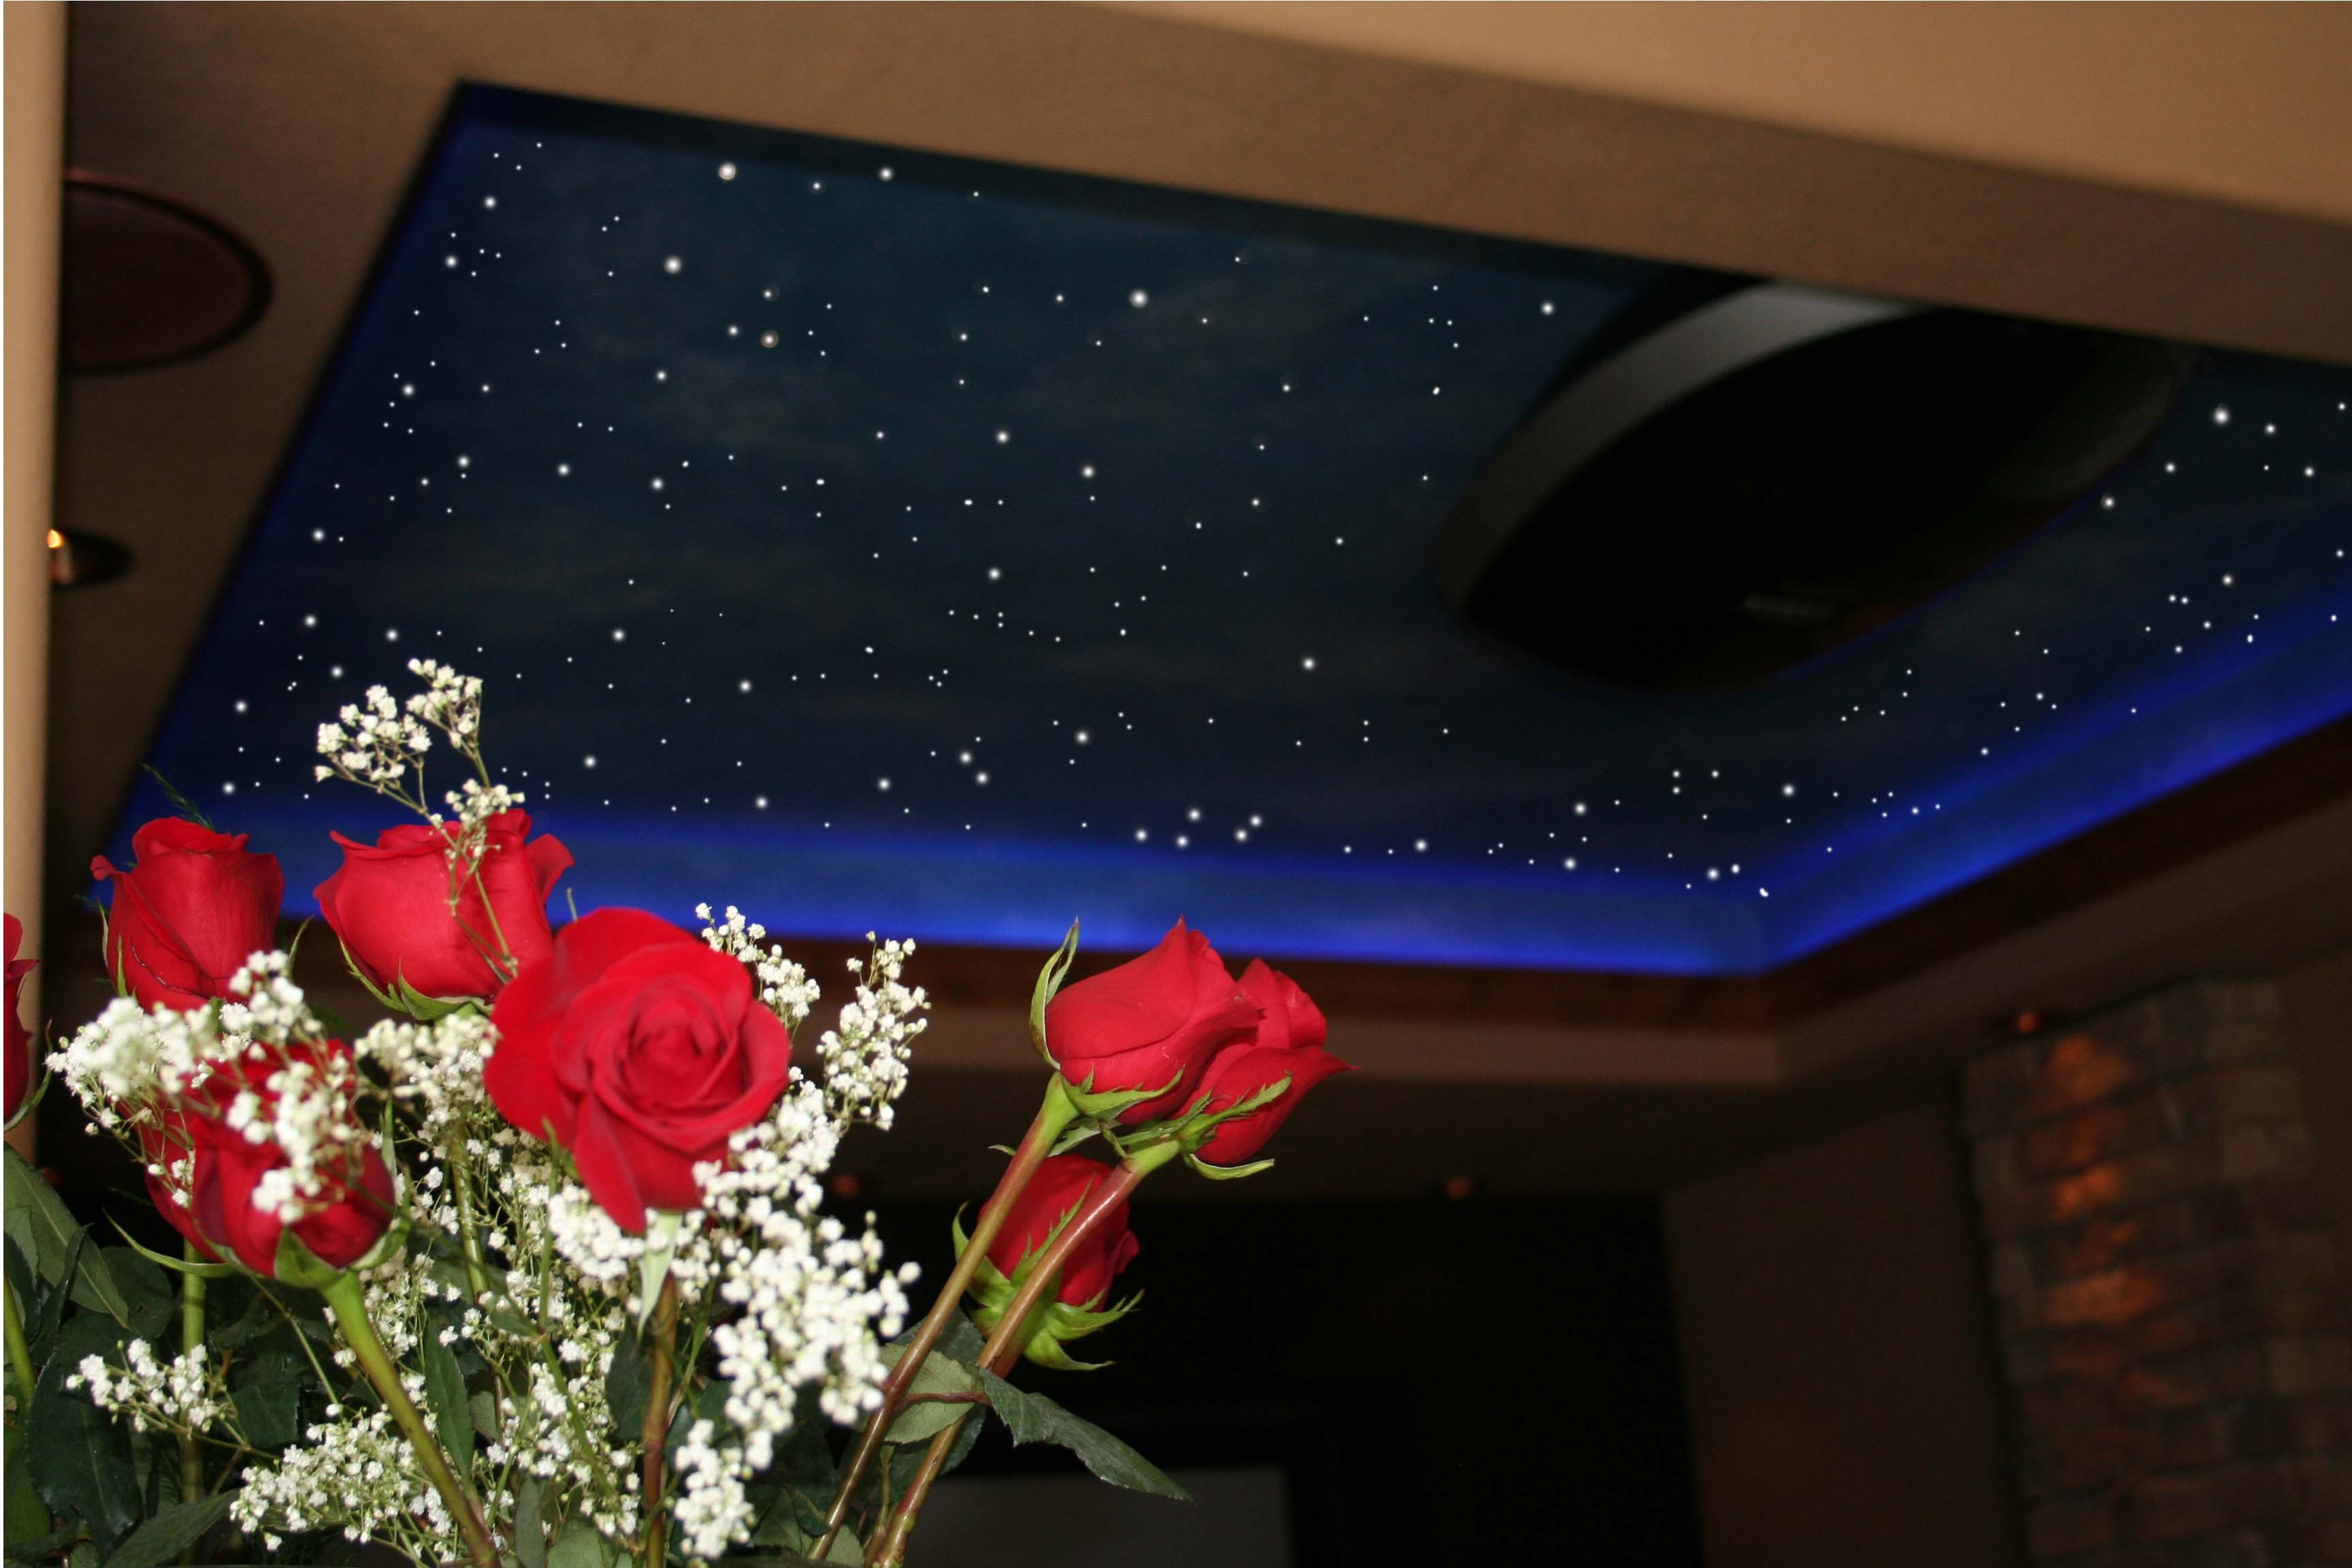 Improove Your Room Outlook With Star Ceiling Lights